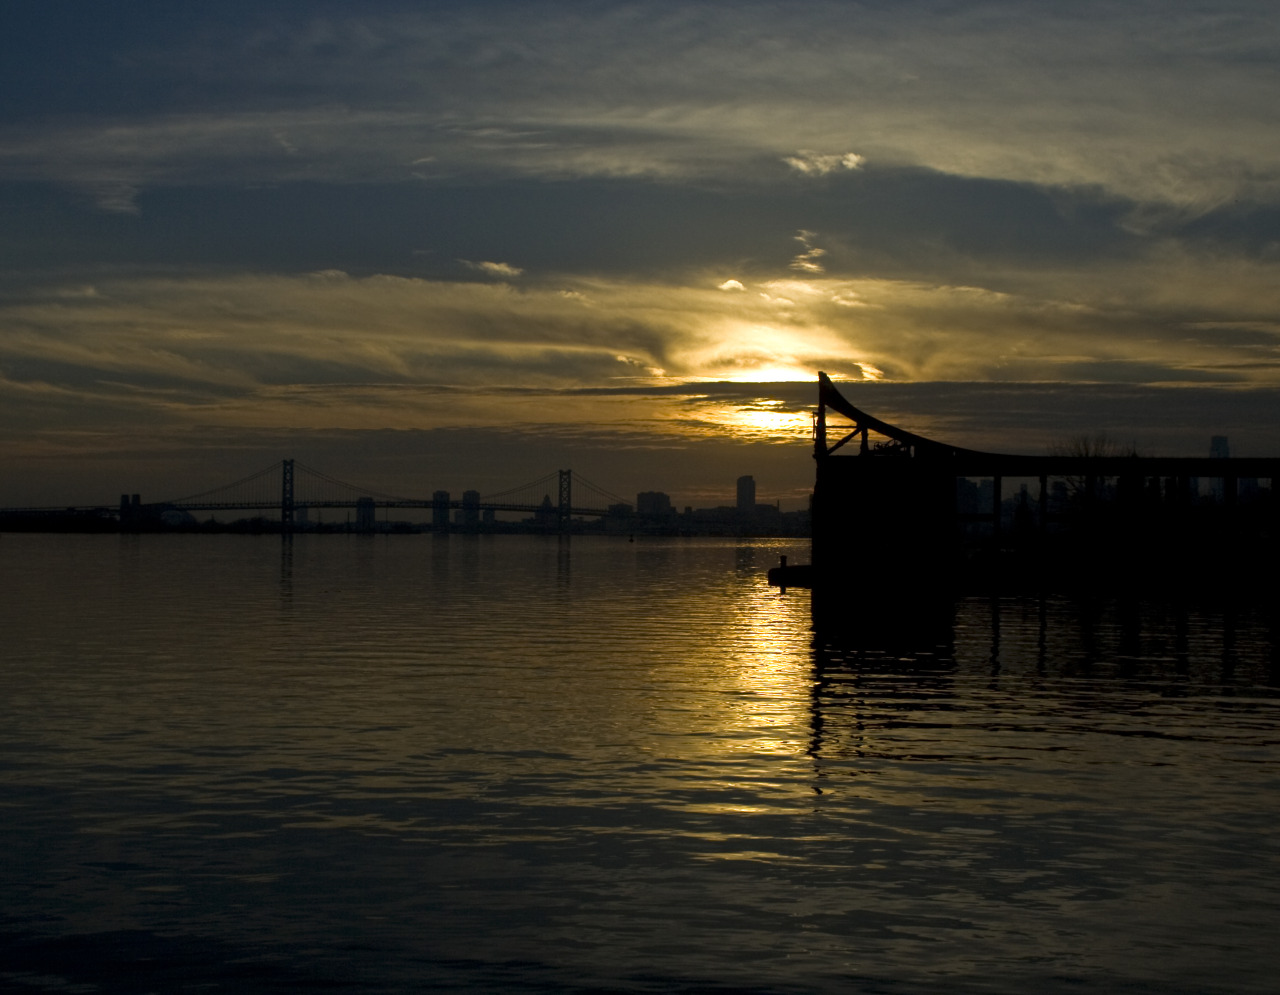 Sunset at the coal pier in Philly.